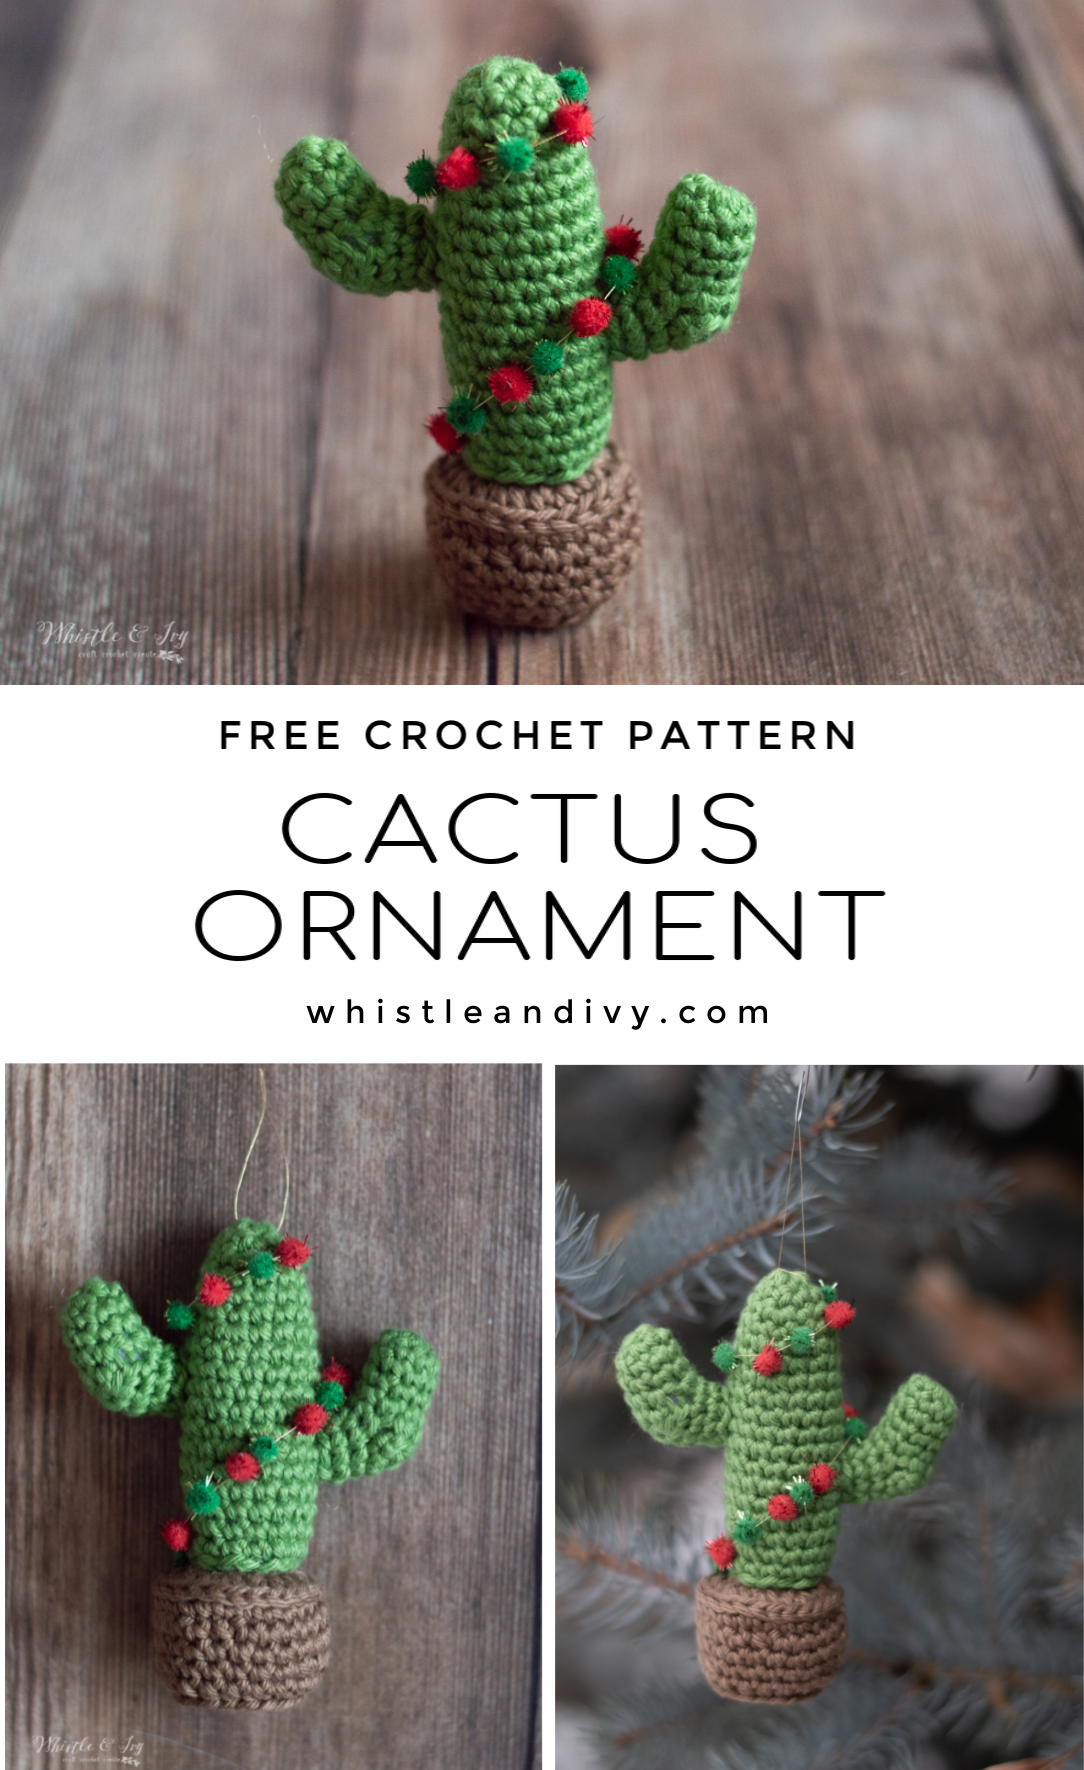 crochet cactus ornament free crochet pattern holiday Christmas